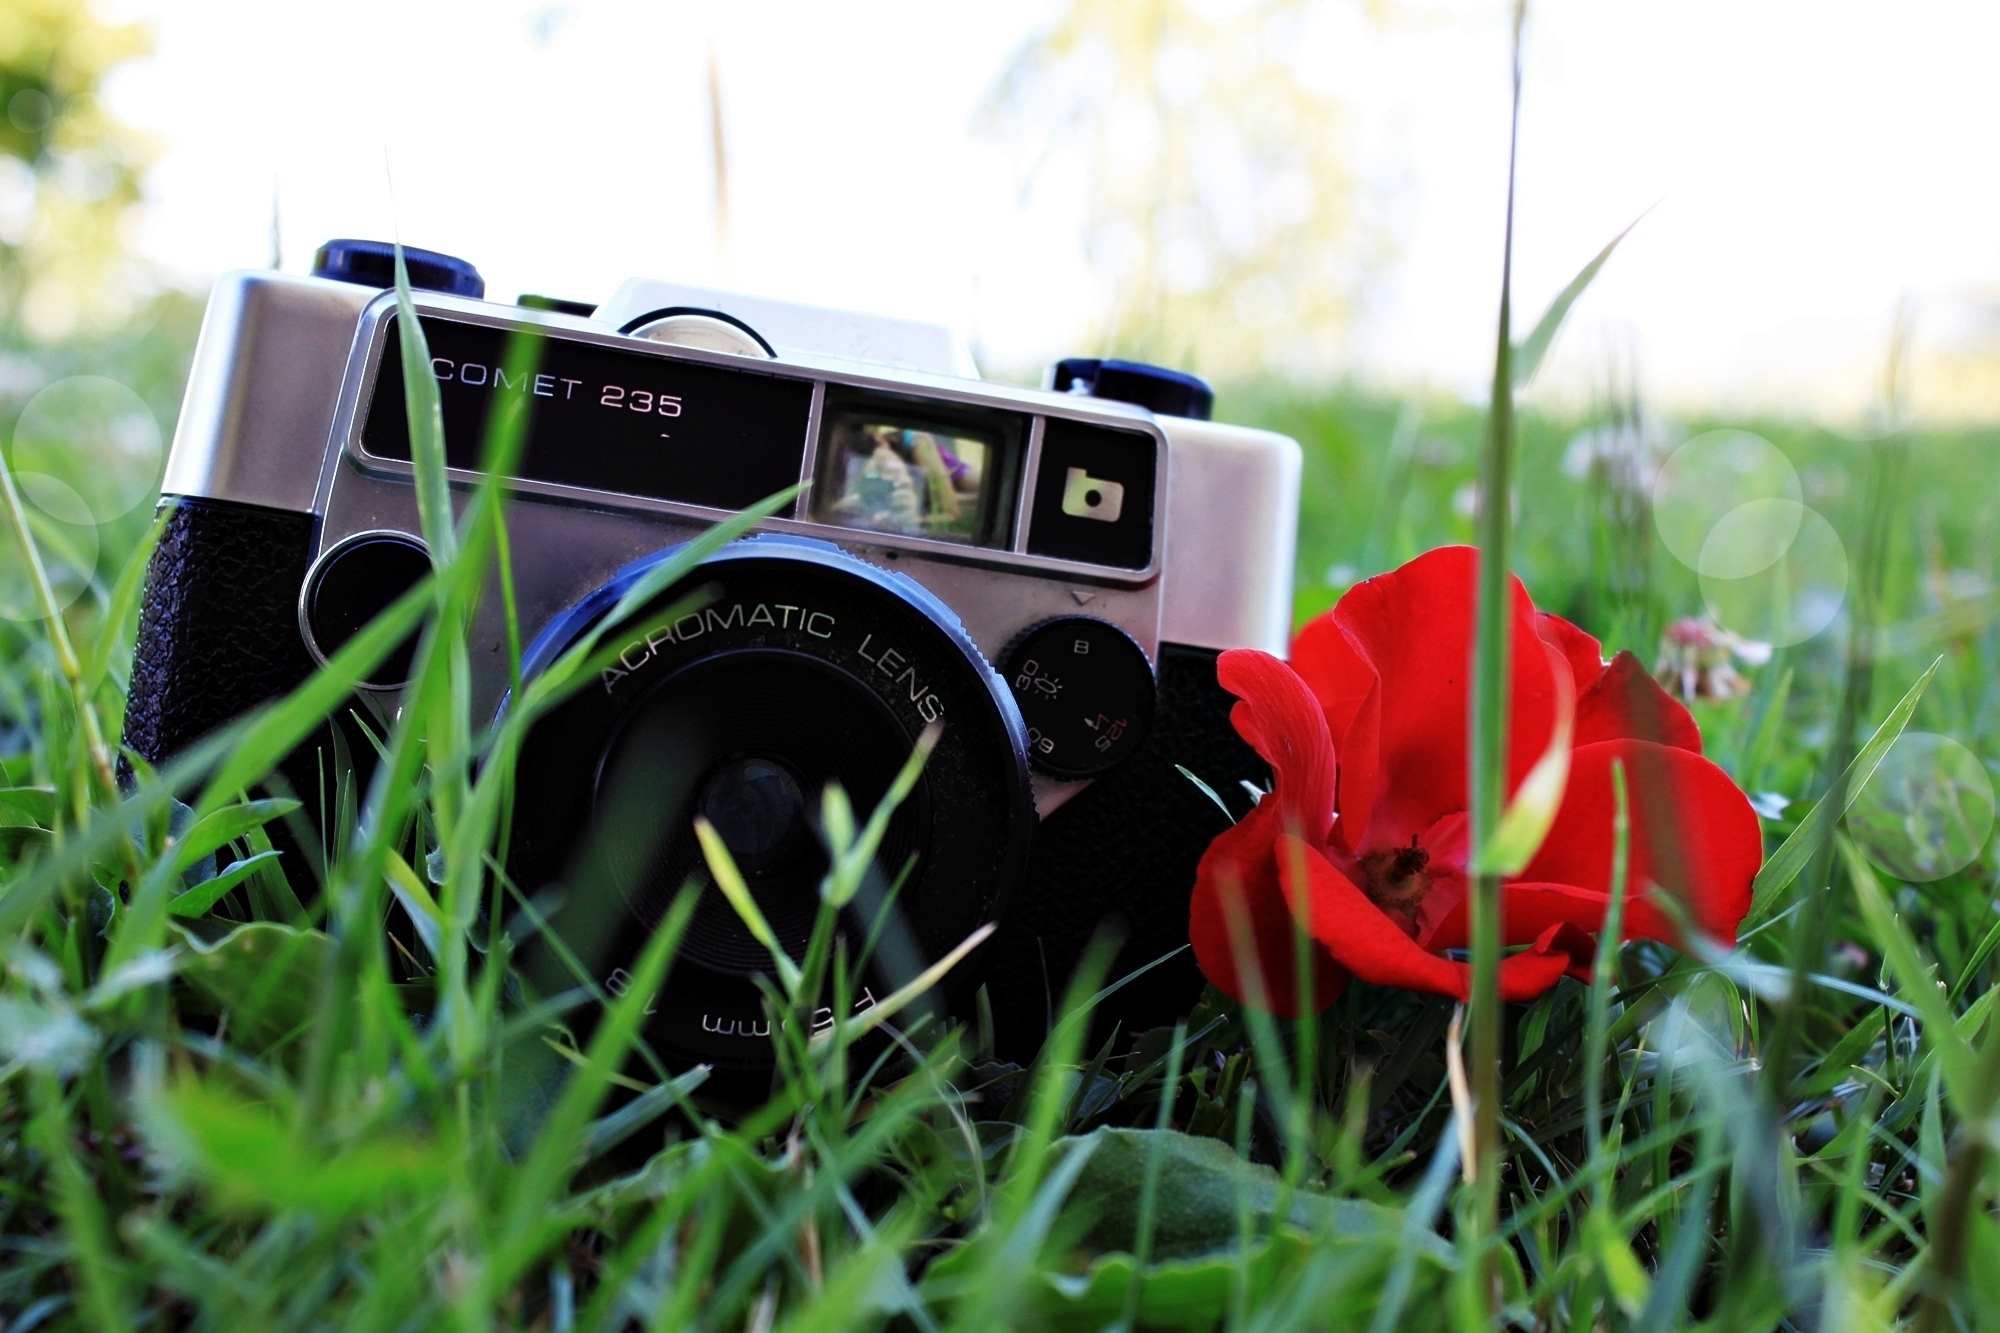 background_poppy_seeds_grass_camera_plant_flower_red_mood_lens_90572_2000x1333